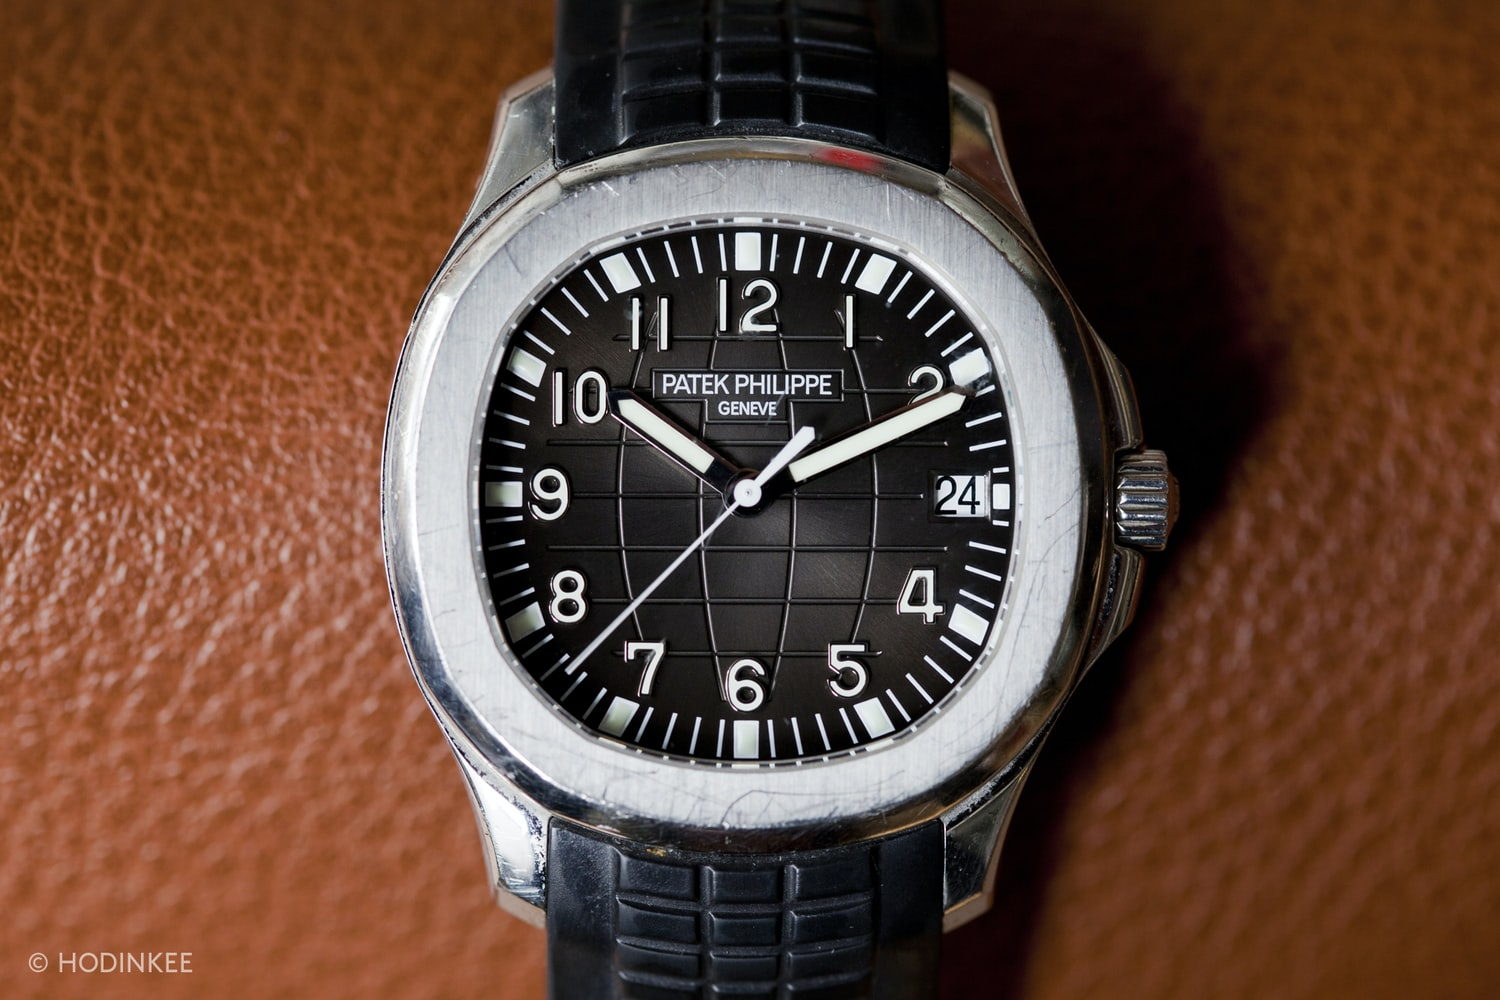 An original Patek Phillipe Aquanaut.  The Eight Watch Anniversaries You Need To Know In 2017 The Eight Watch Anniversaries You Need To Know In 2017  img